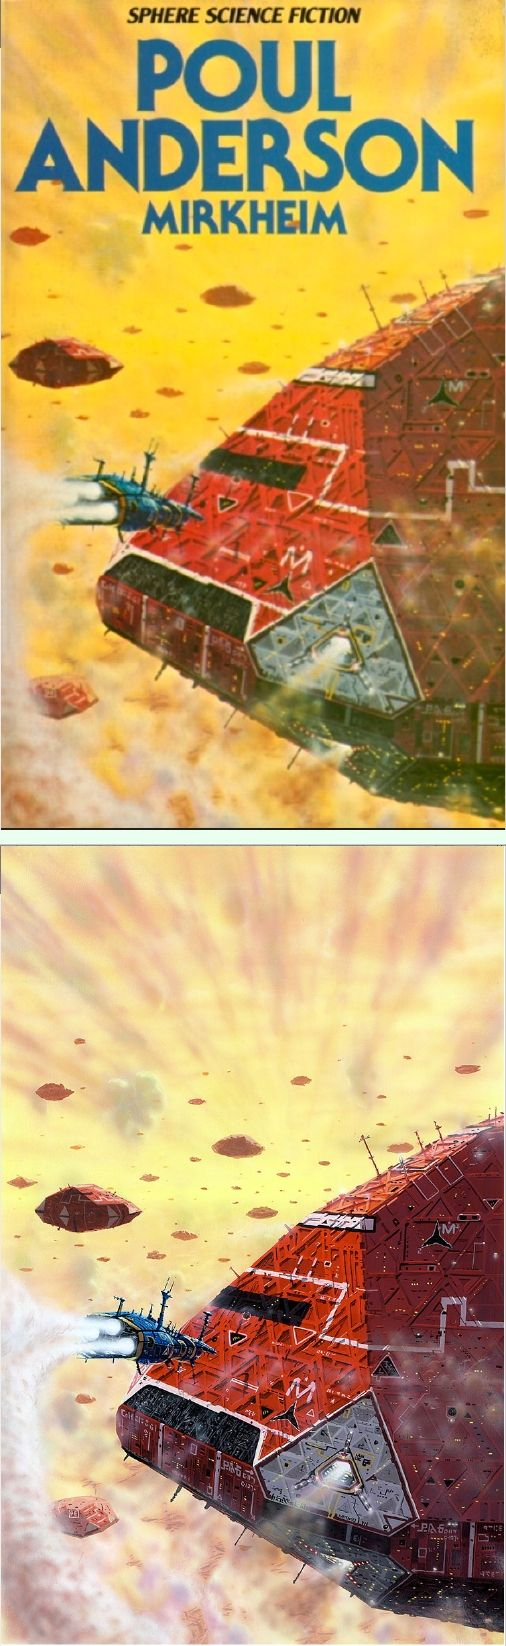 Watercolor book covers - Peter Elson Mirkheim By Poul Anderson 1978 Sphere Books Cover By Isfdb